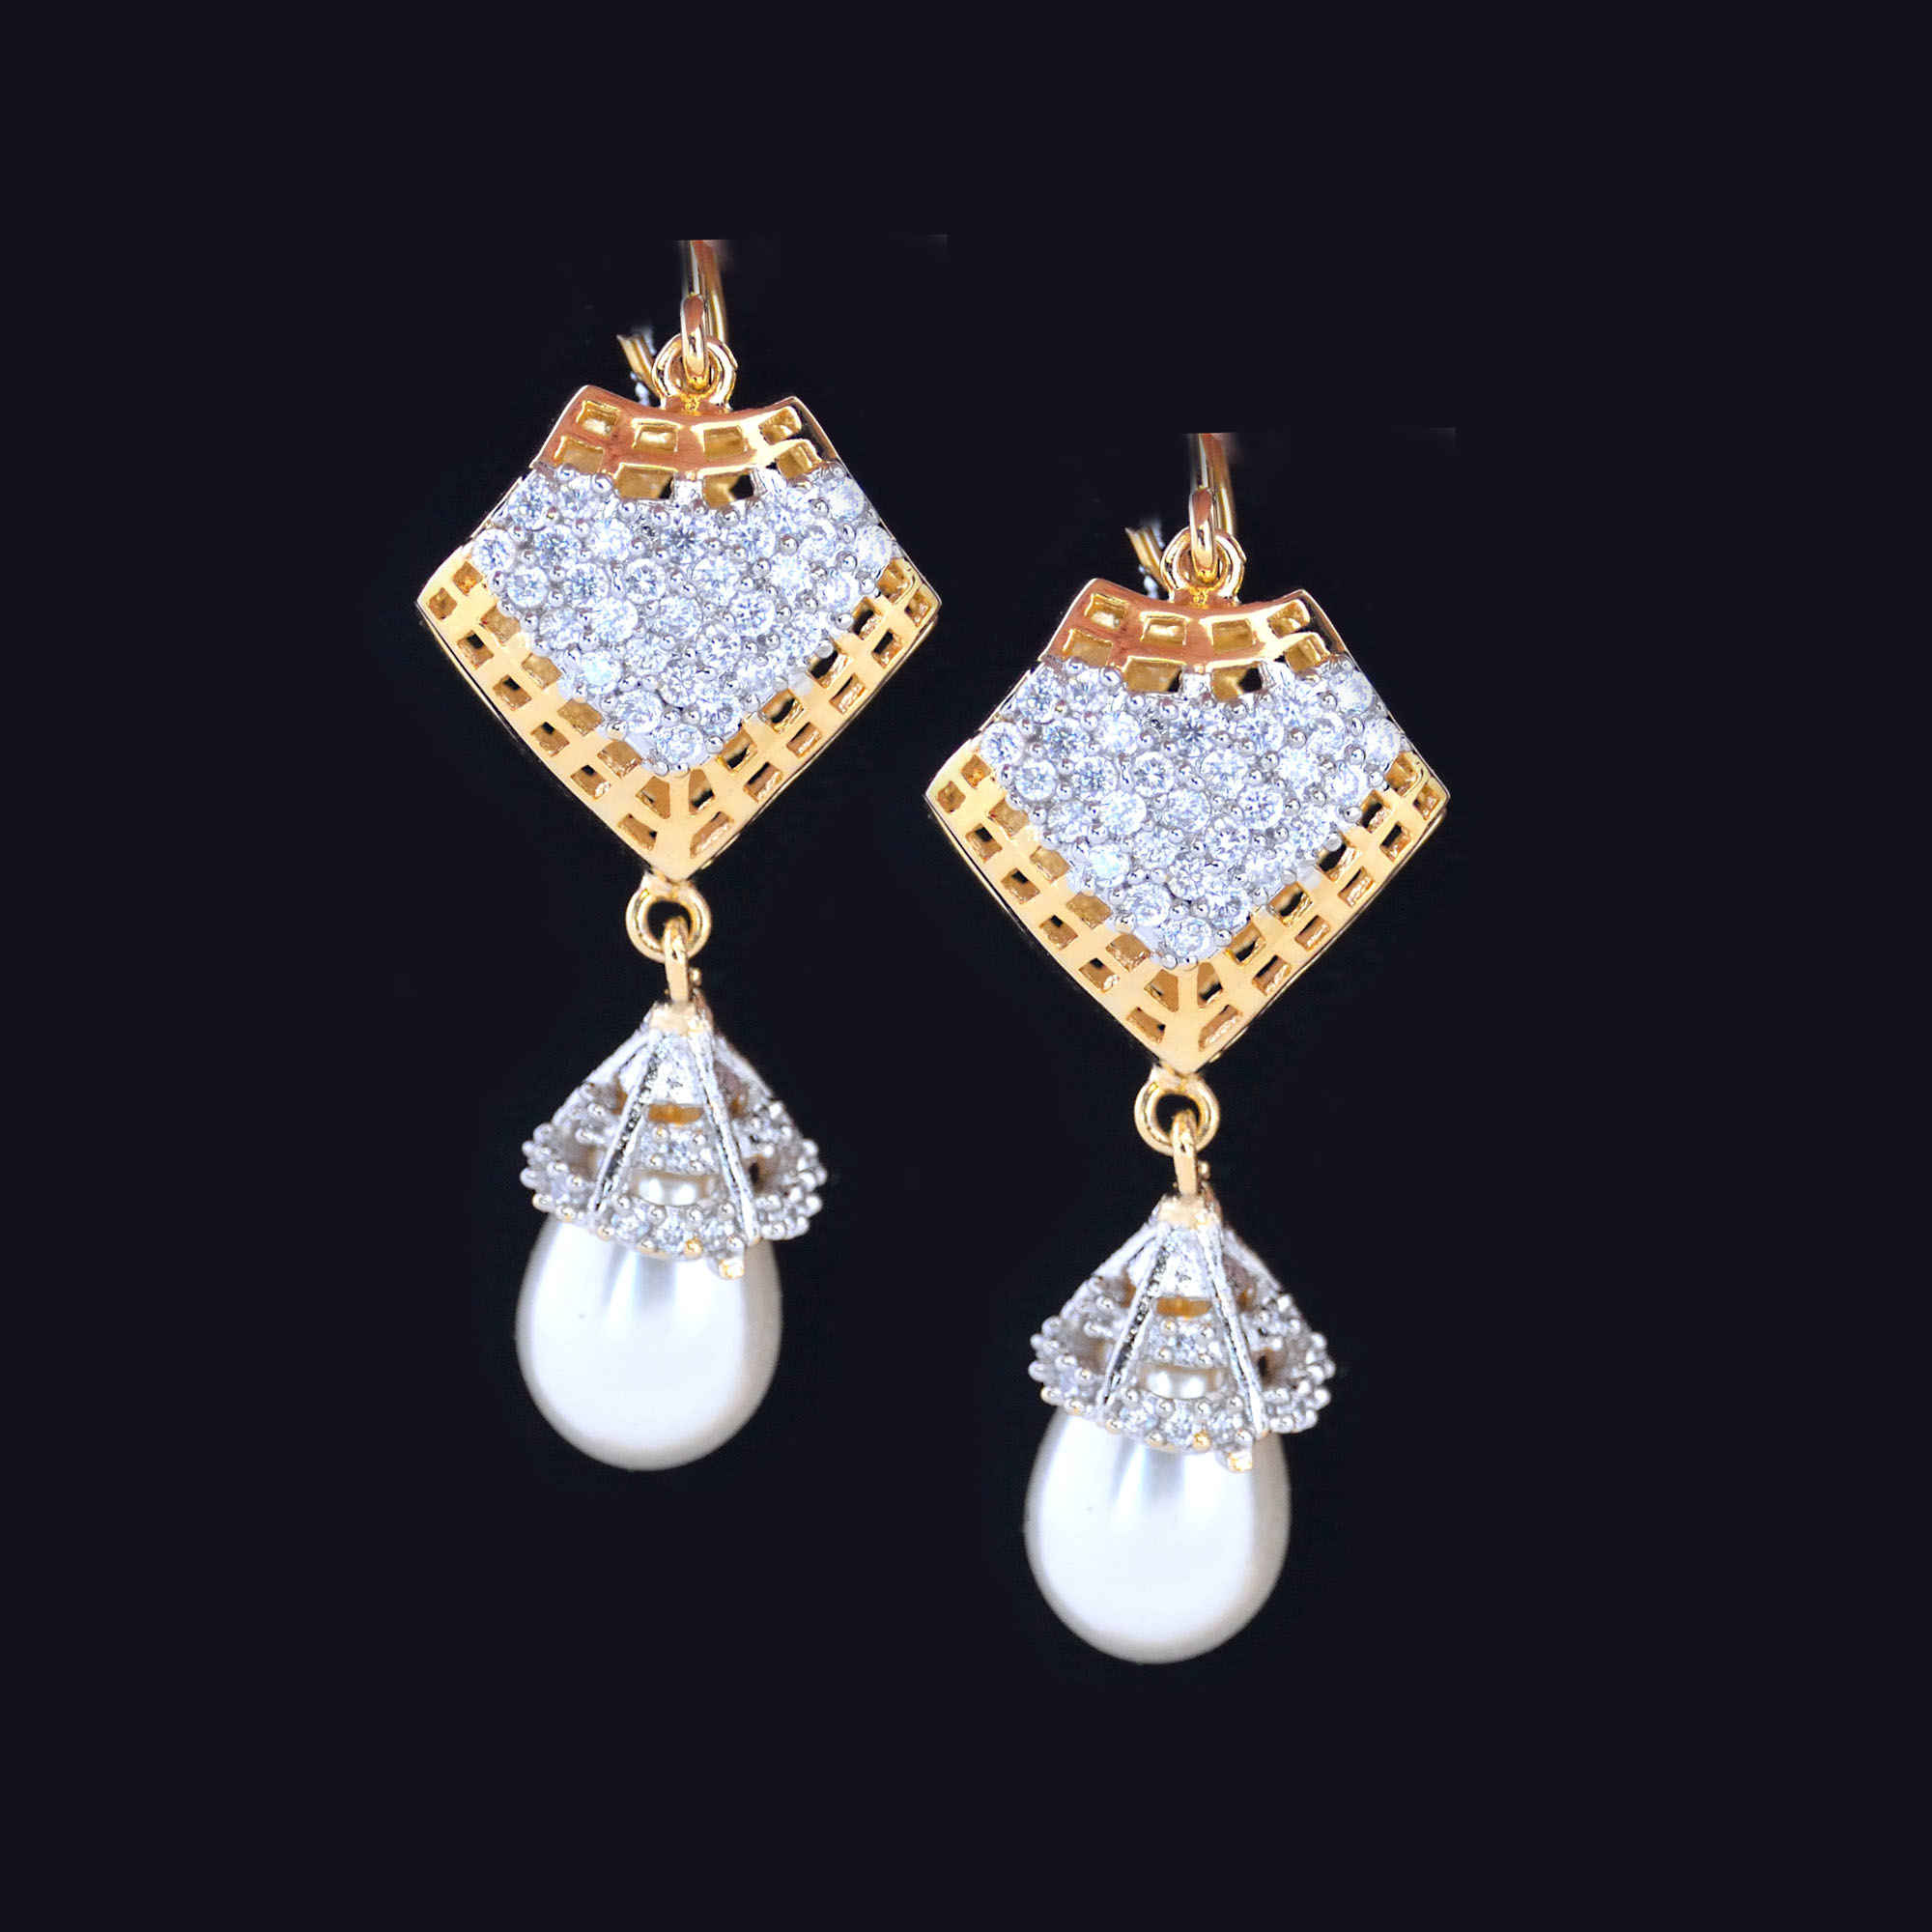 stone jewelry swasam com diamond diamon cz store american indian earrings